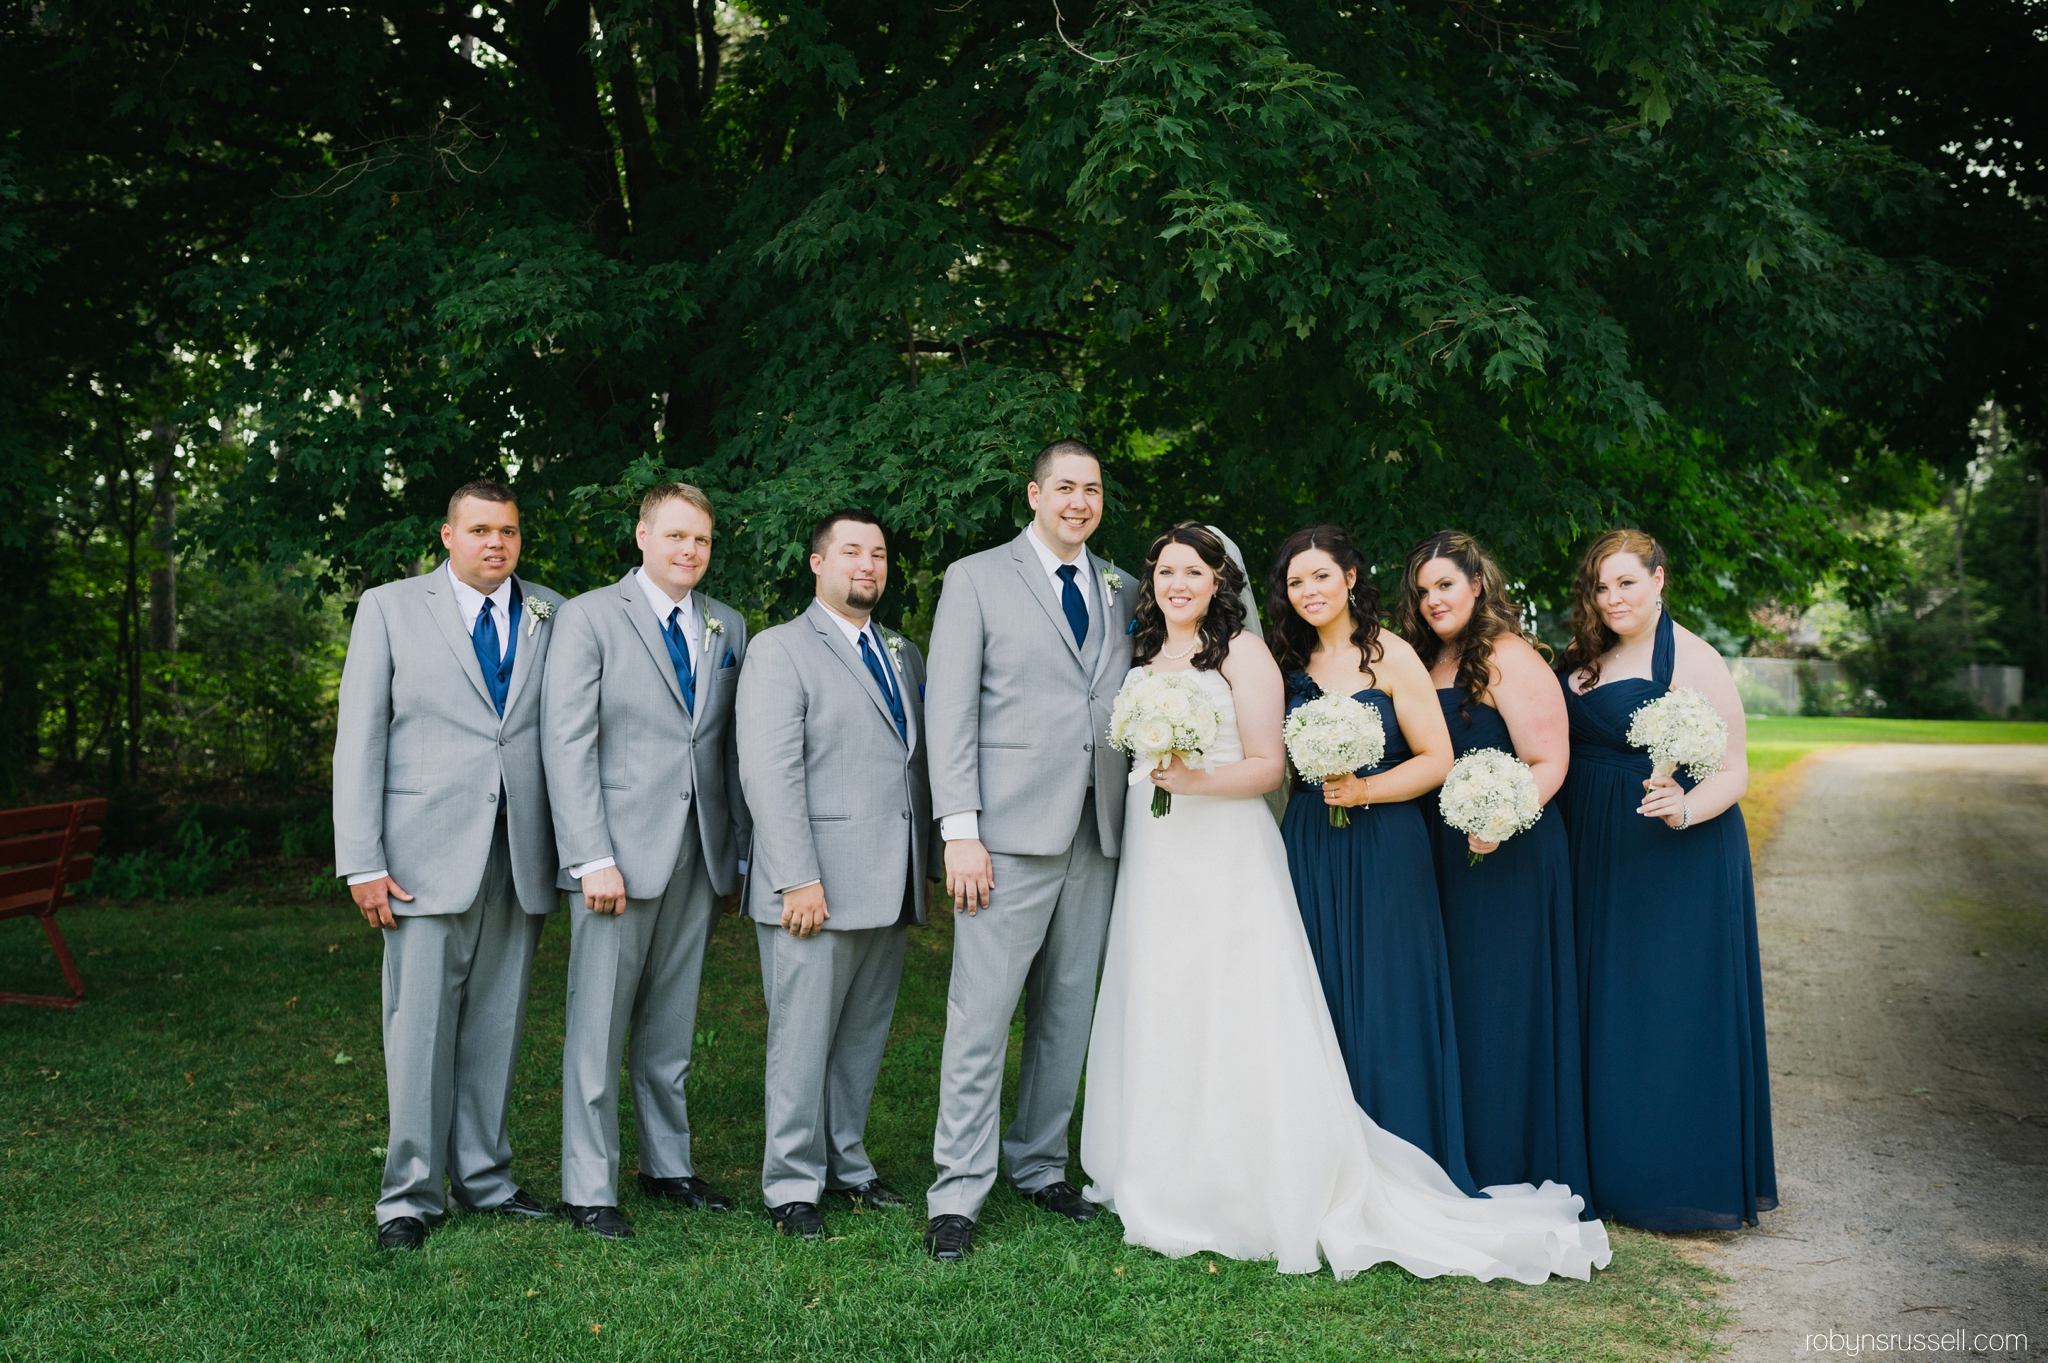 29-bridal-party-aj-and-james-drysdale-tree-farm-wedding.jpg